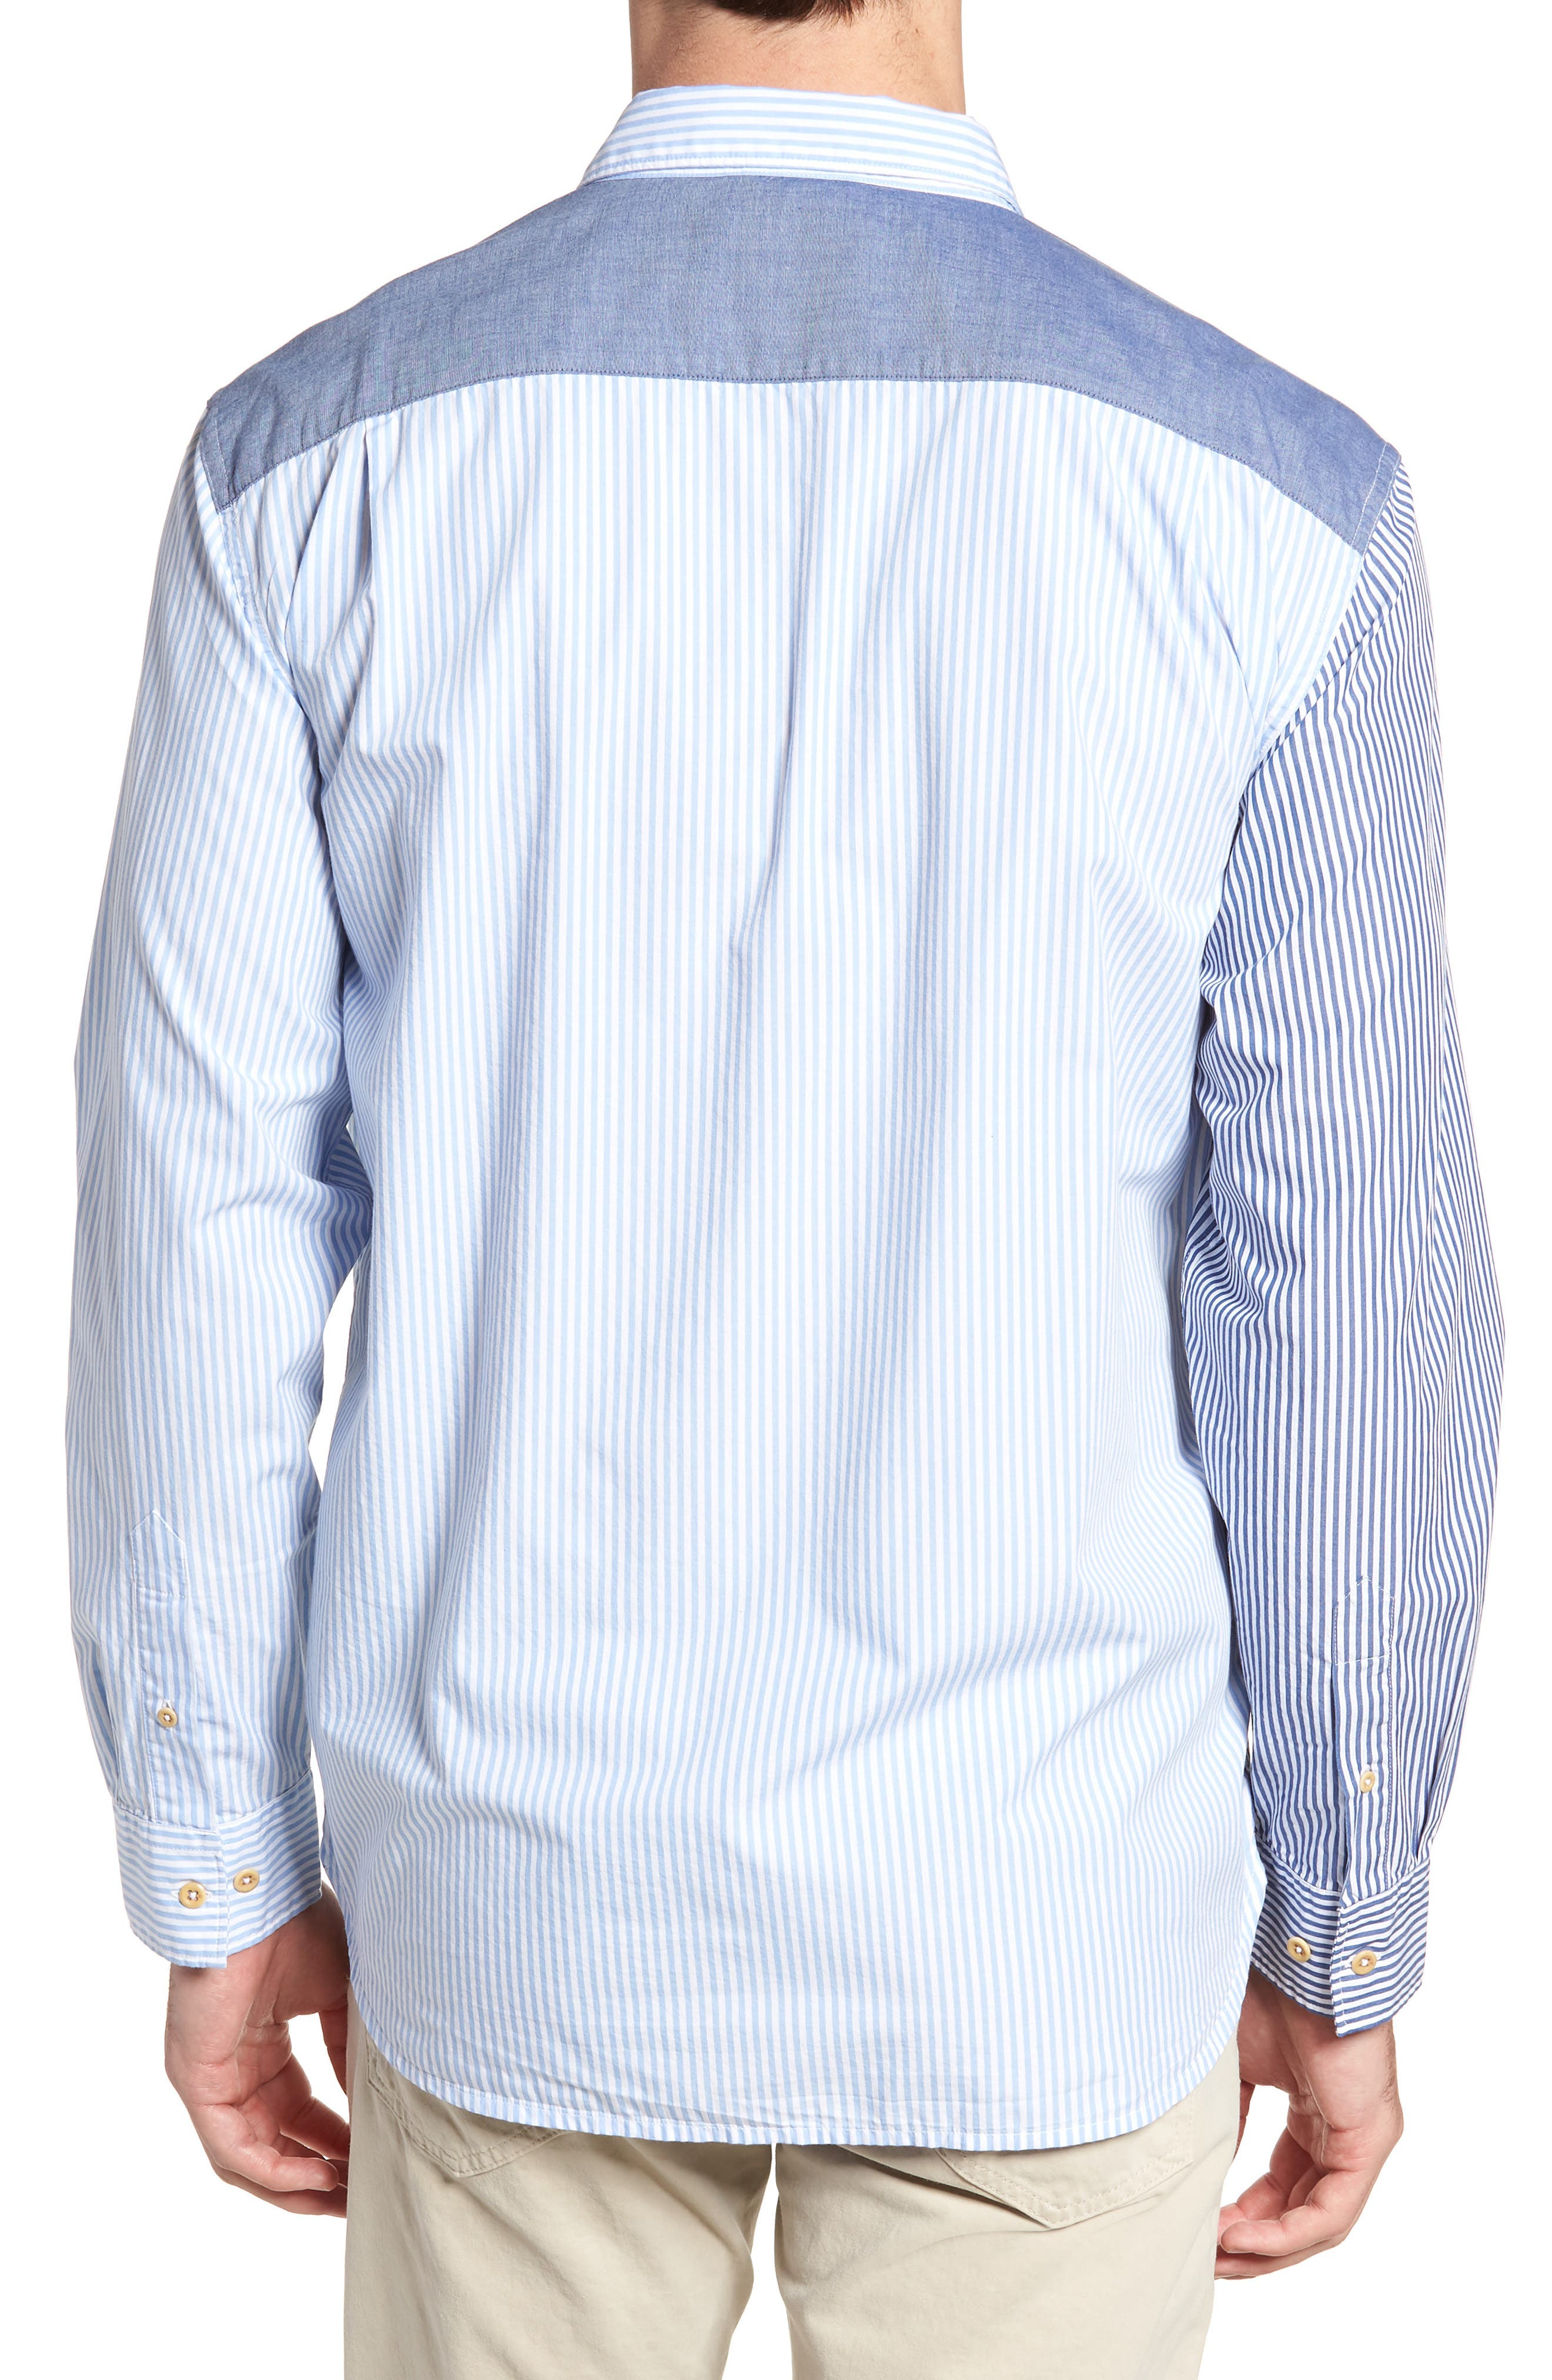 Patchwork Relaxed Fit Sport Shirt,                             Alternate thumbnail 2, color,                             416